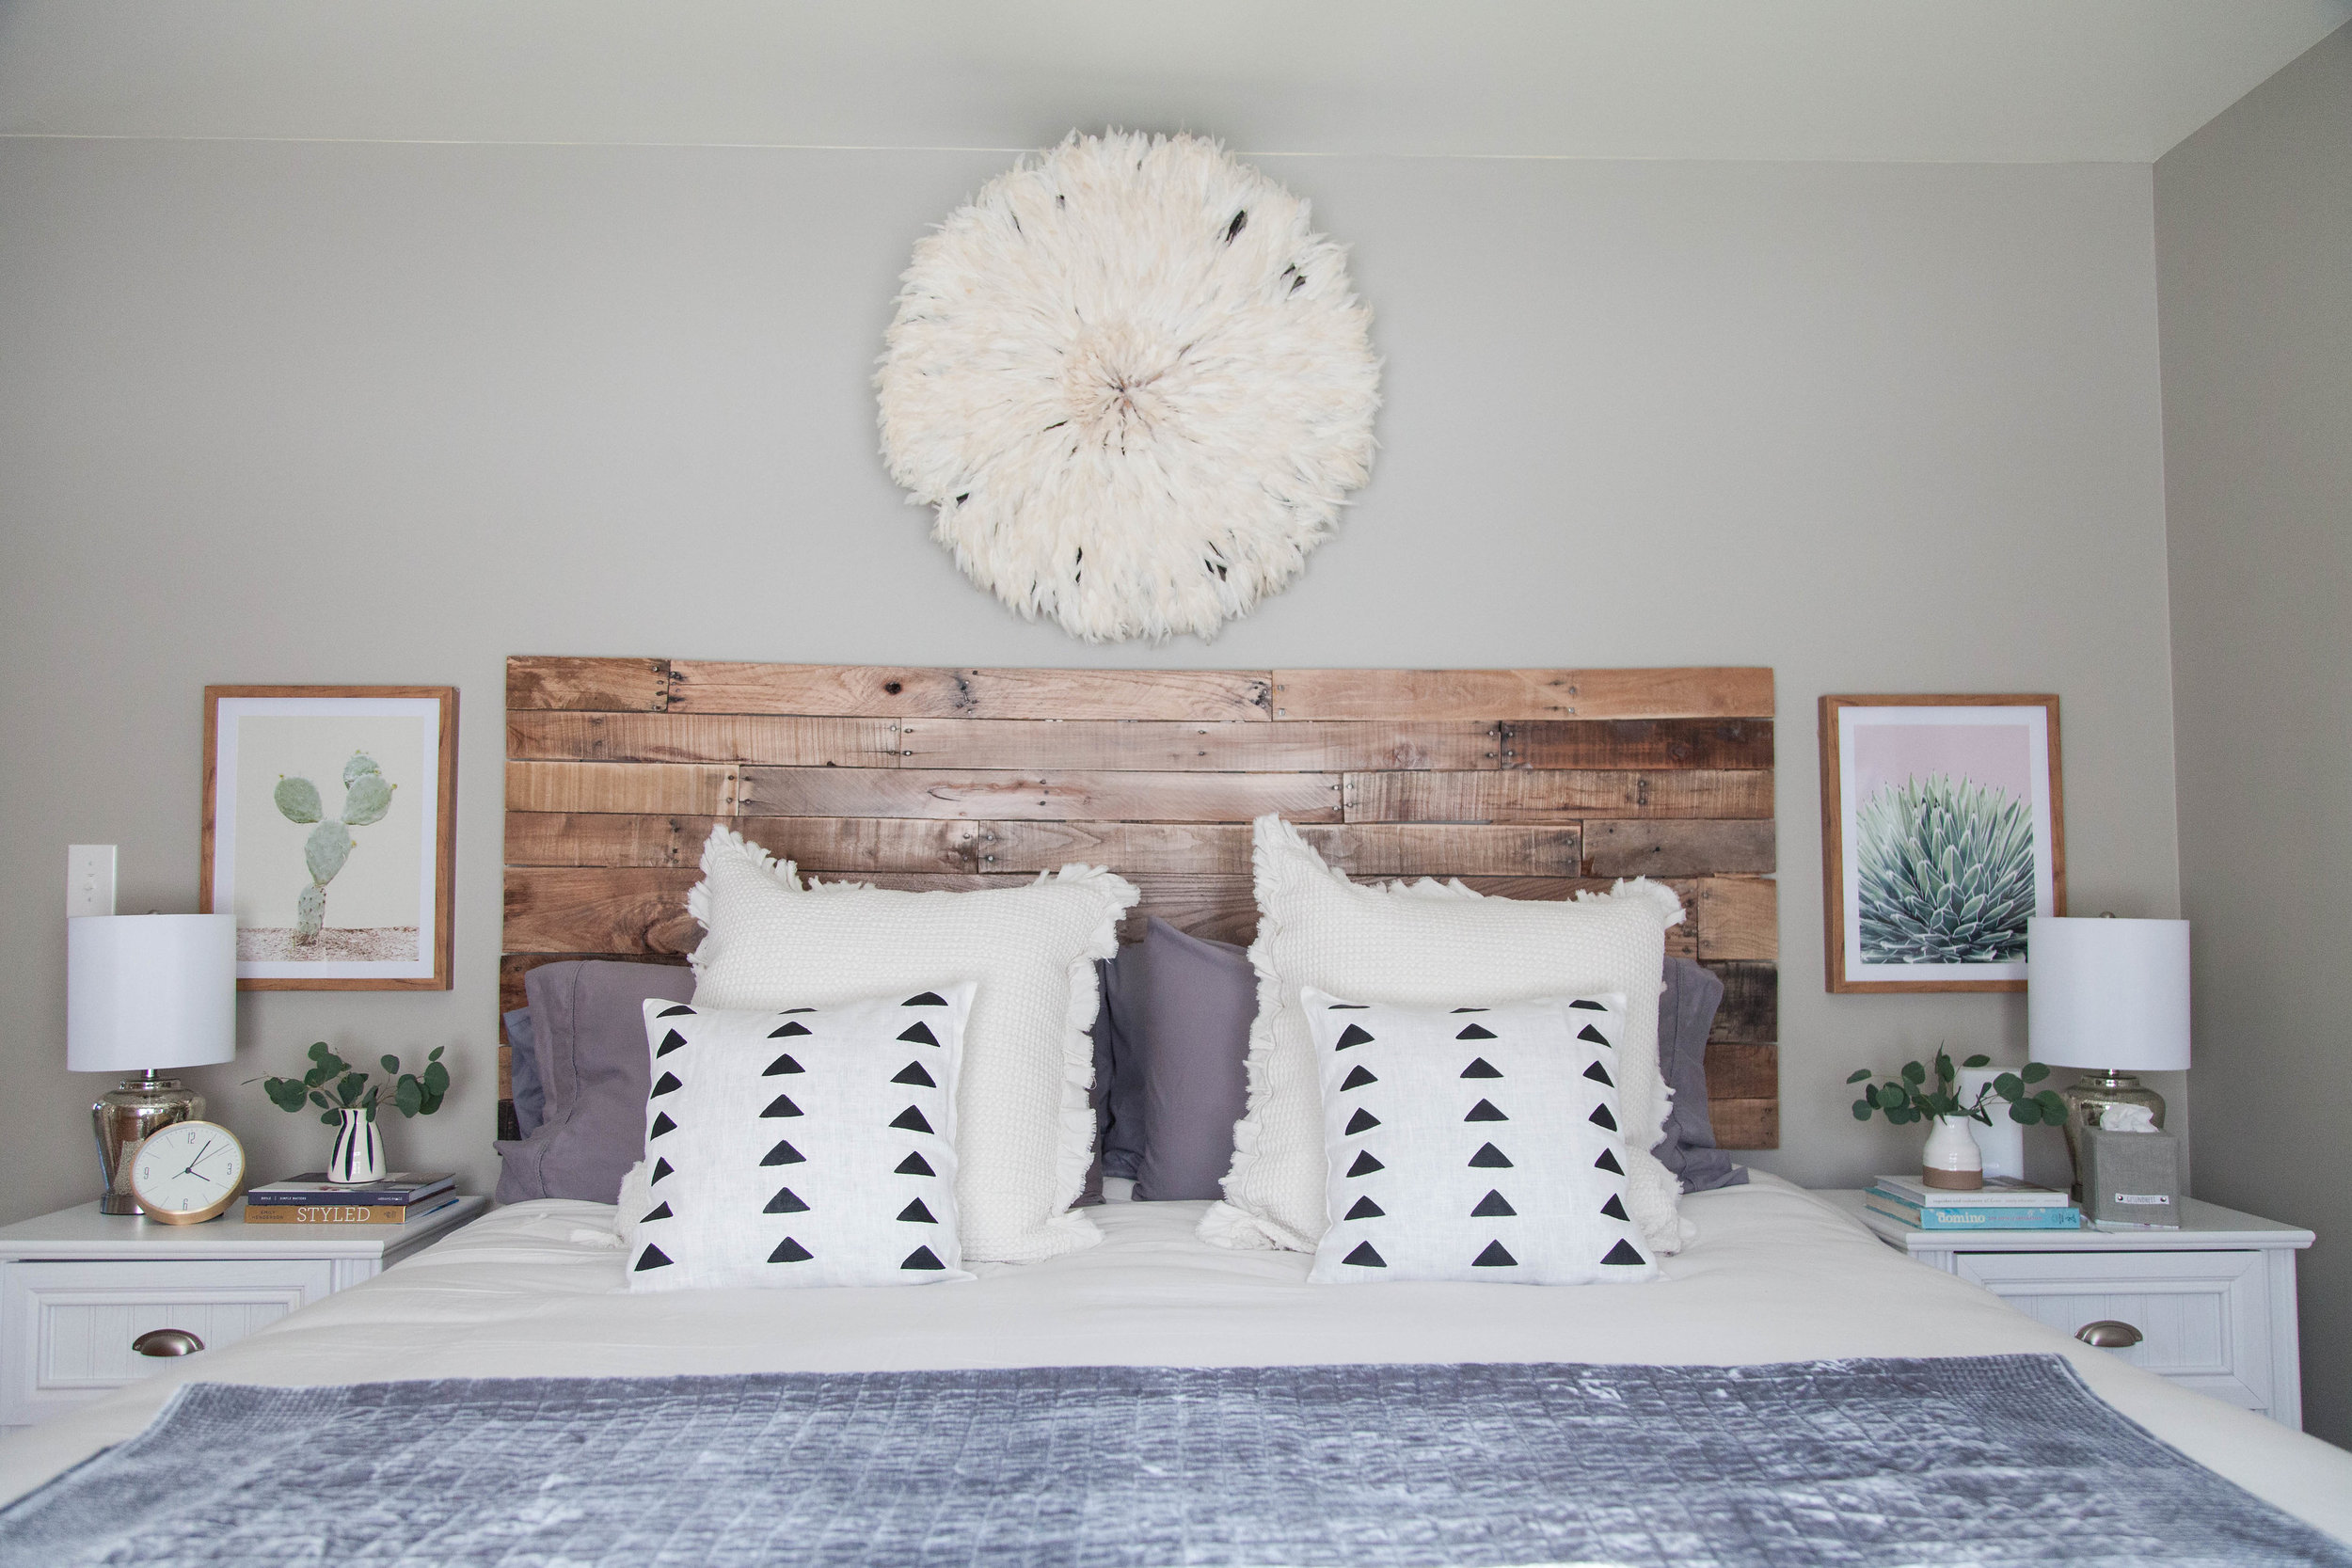 Guest house or bridal suite bedroom, view of bed and rustic wood headboard, in Hamilton, NY